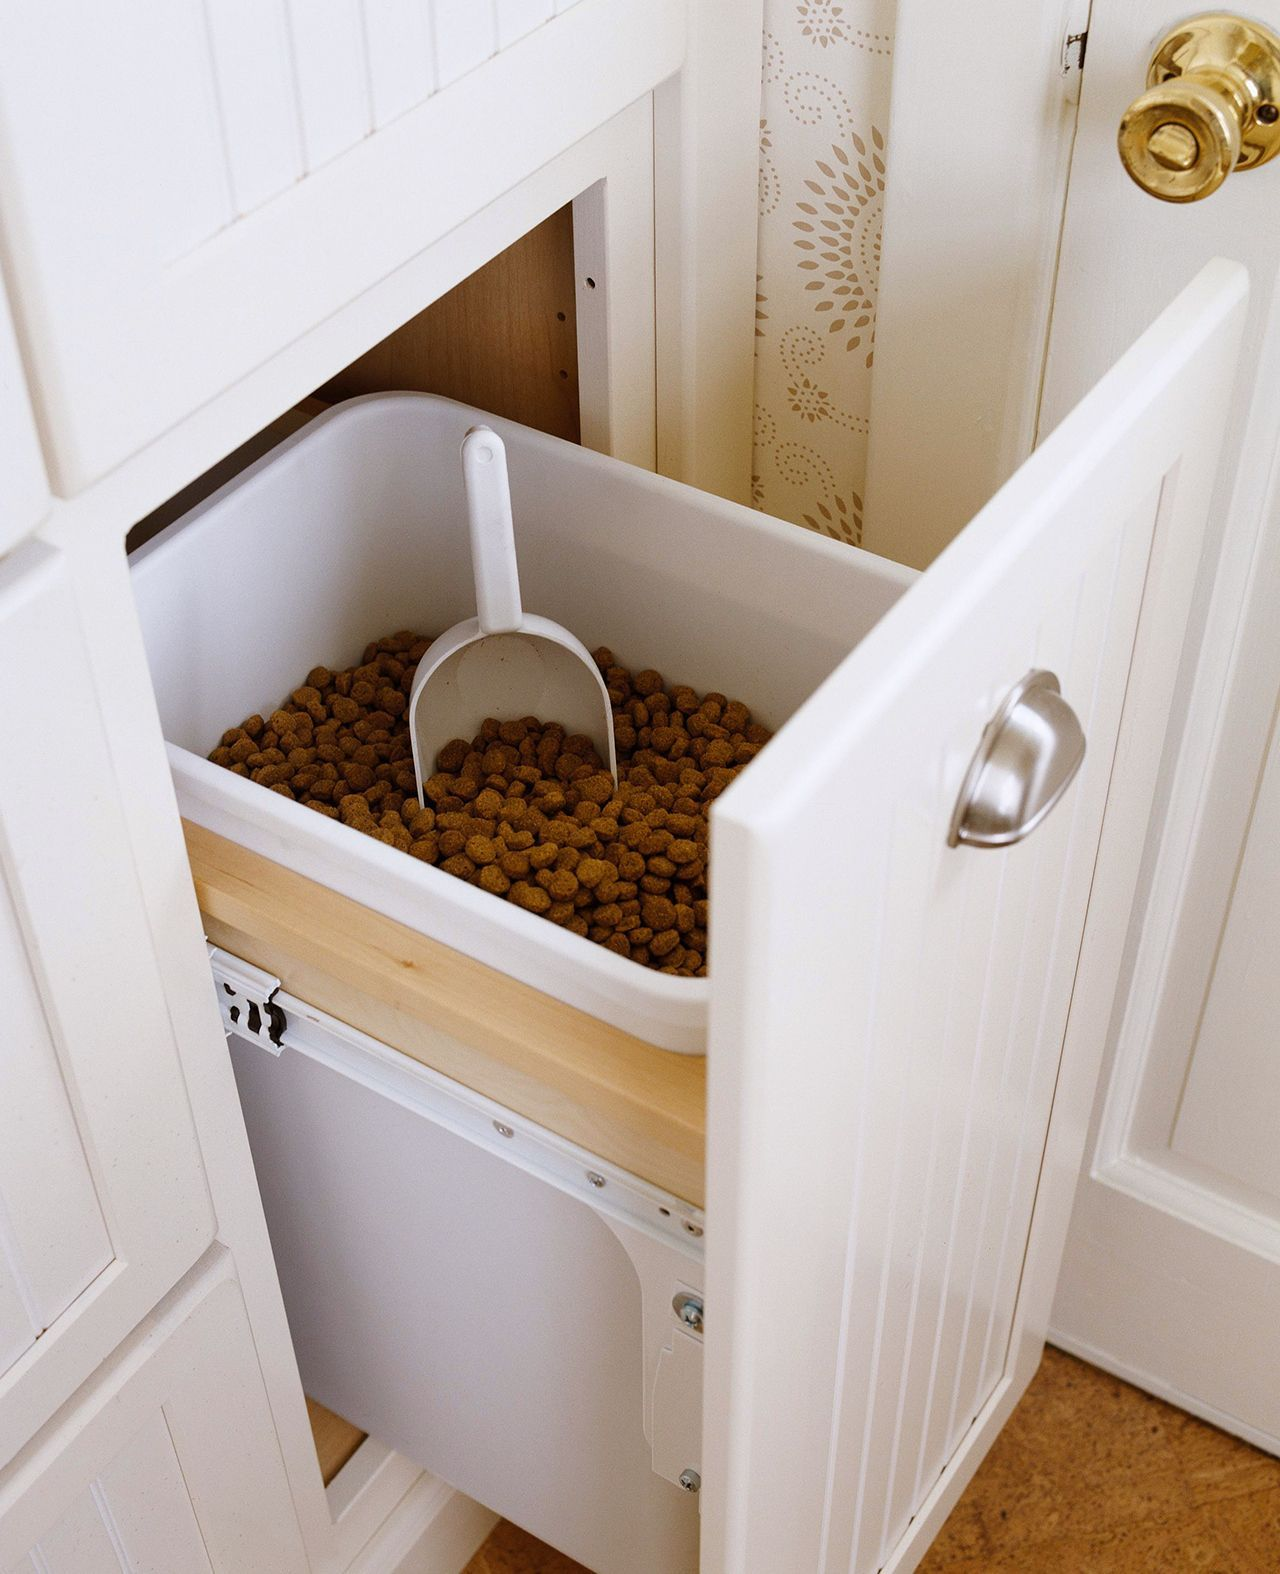 Large dogs typically require a lot of food and finding a convenient way to store dog food can be tricky. To make feeding time easier, outfit a pull-out cabinet with a bin of ready-to-scoop kibble. #petstorageideas #storageandorganizationideas #petsuppliesorganization #dog #cat #petparent #bhg